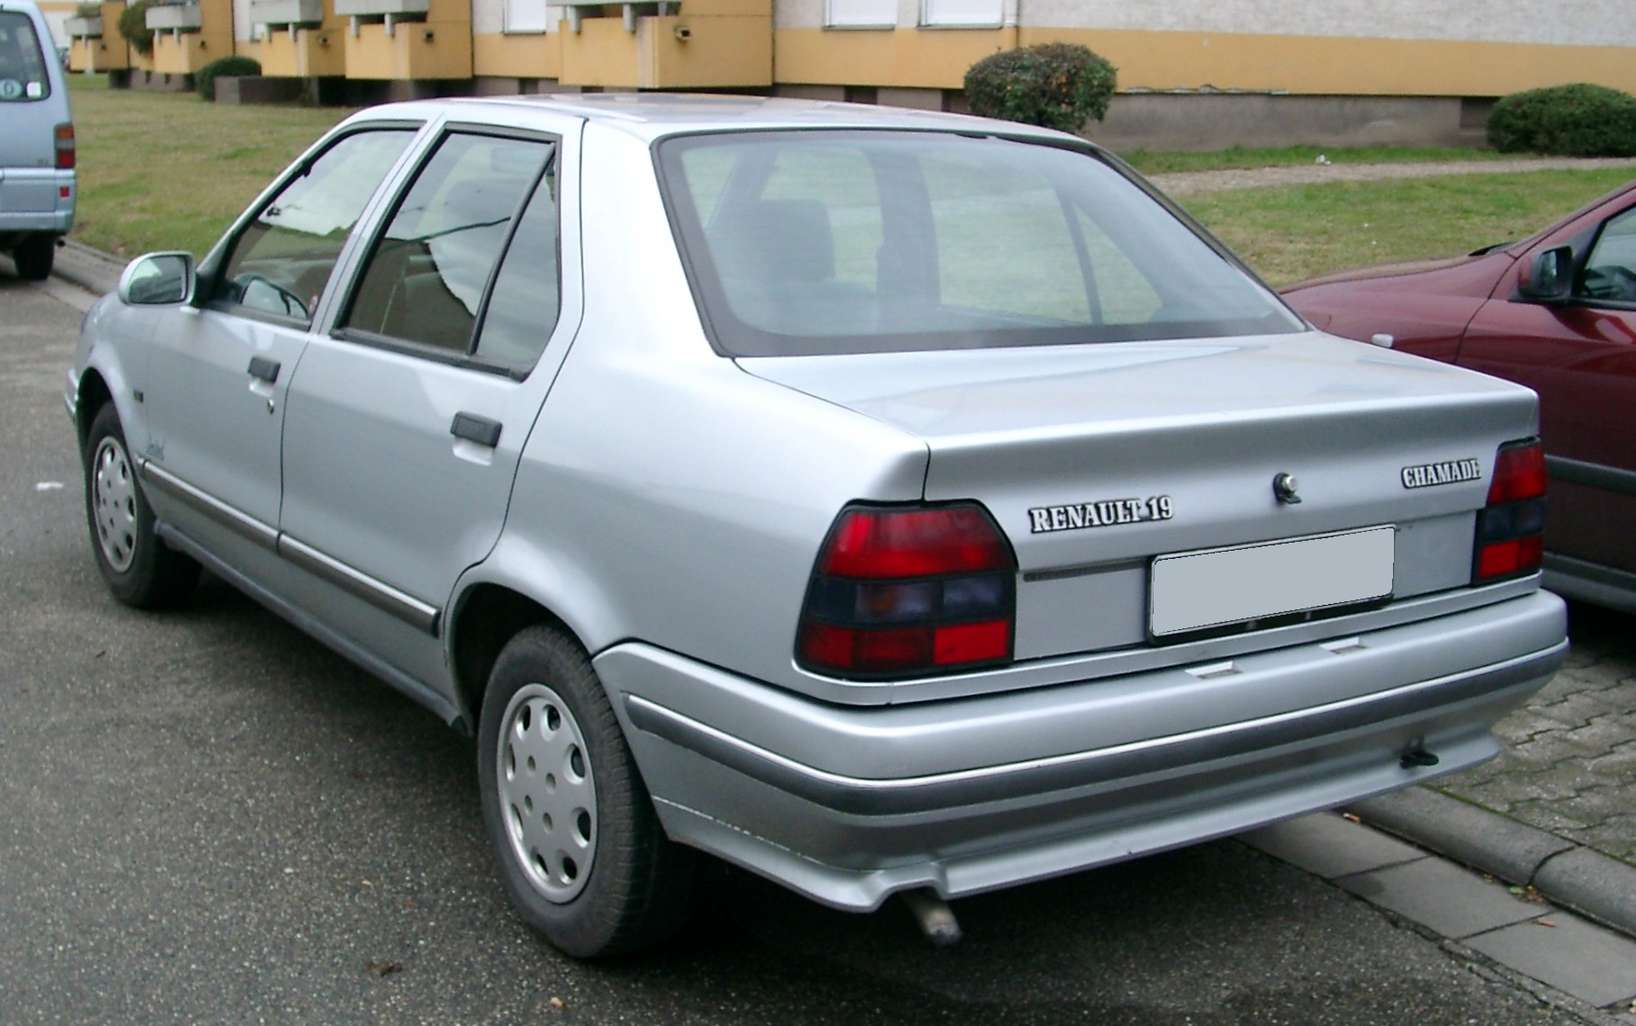 Renault 19 Chamade #9525164